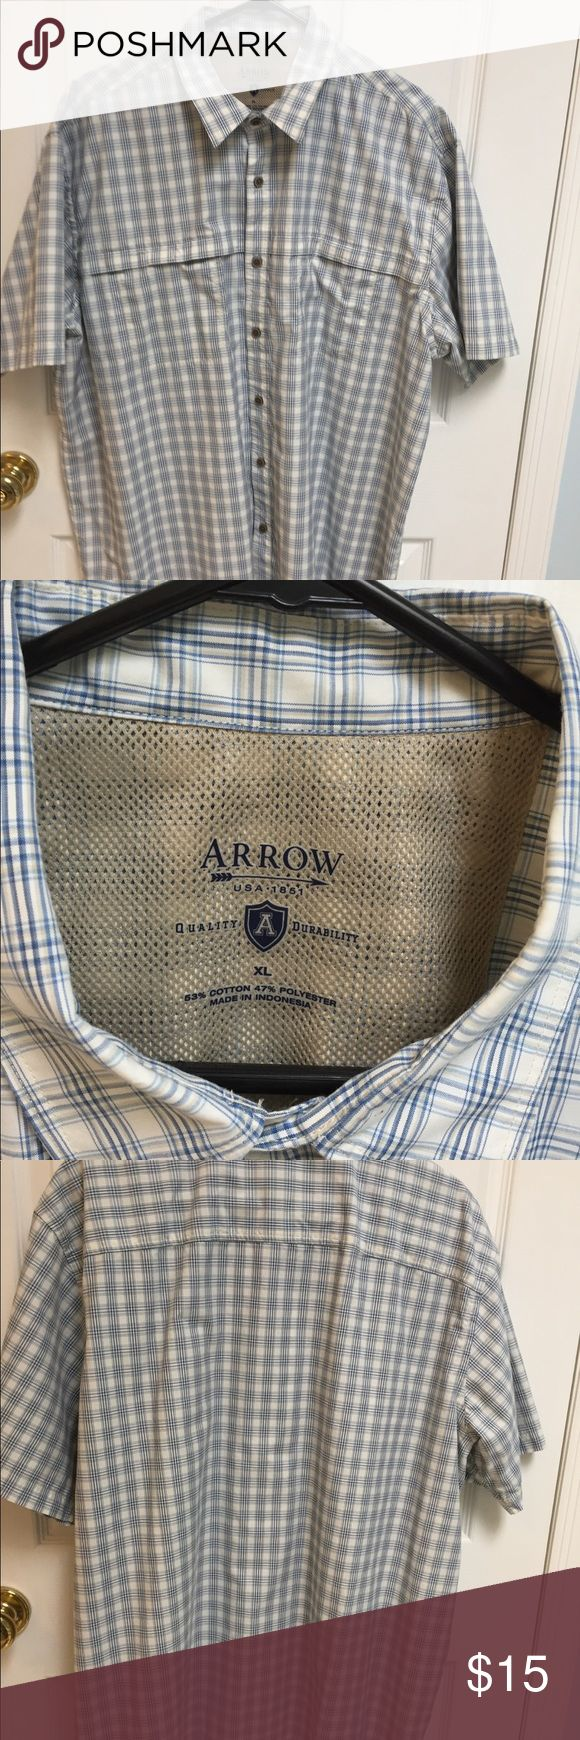 Men' s Arrow short sleeve shirt New without tags Arrow shirt. Blue, tan and off white plaid design. Has two front pockets with velcro closing. Arrow Shirts Casual Button Down Shirts